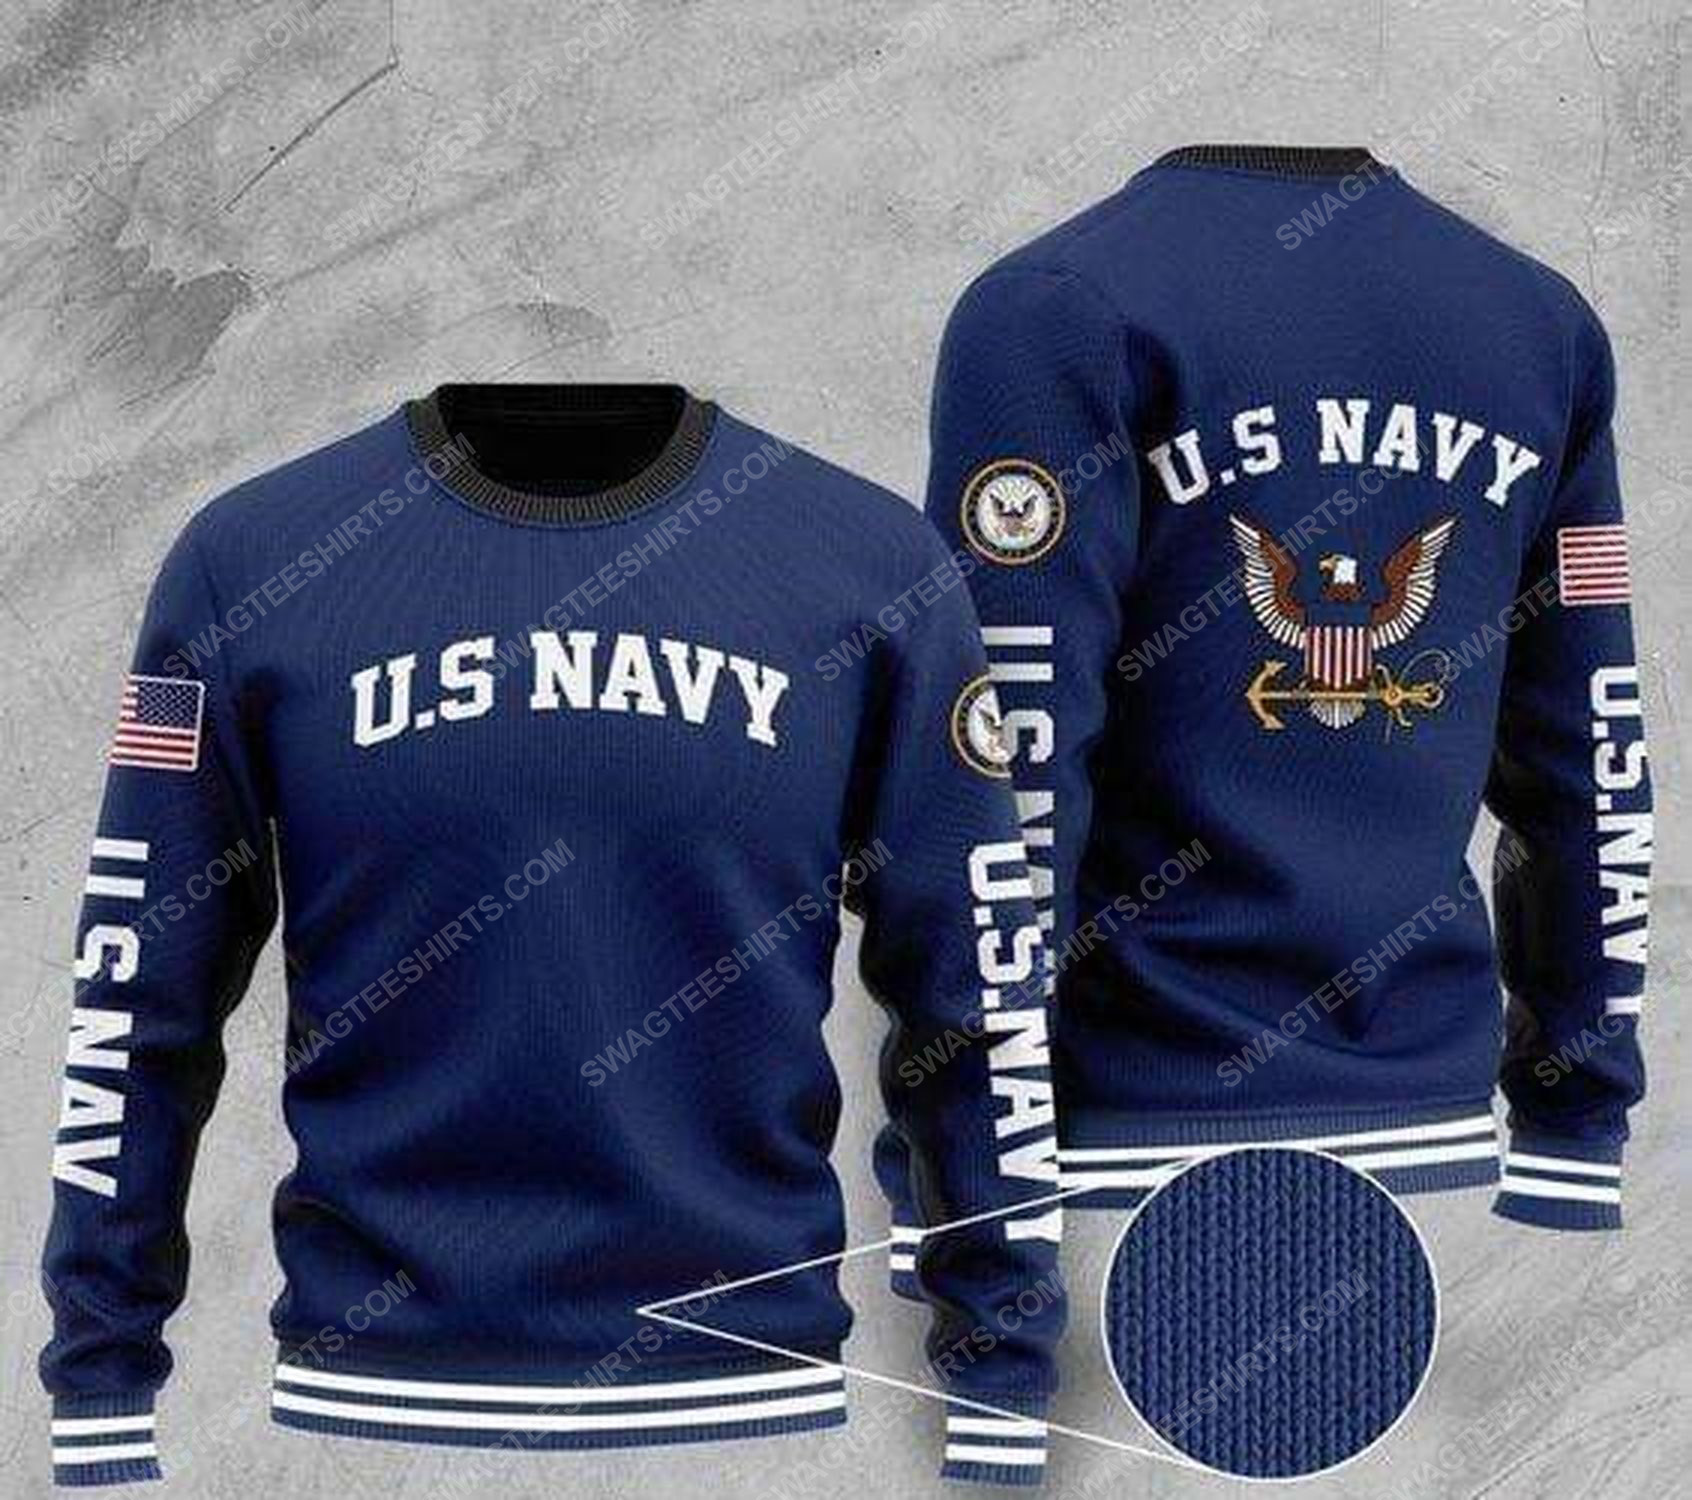 United states navy all over print ugly christmas sweater 1 - Copy